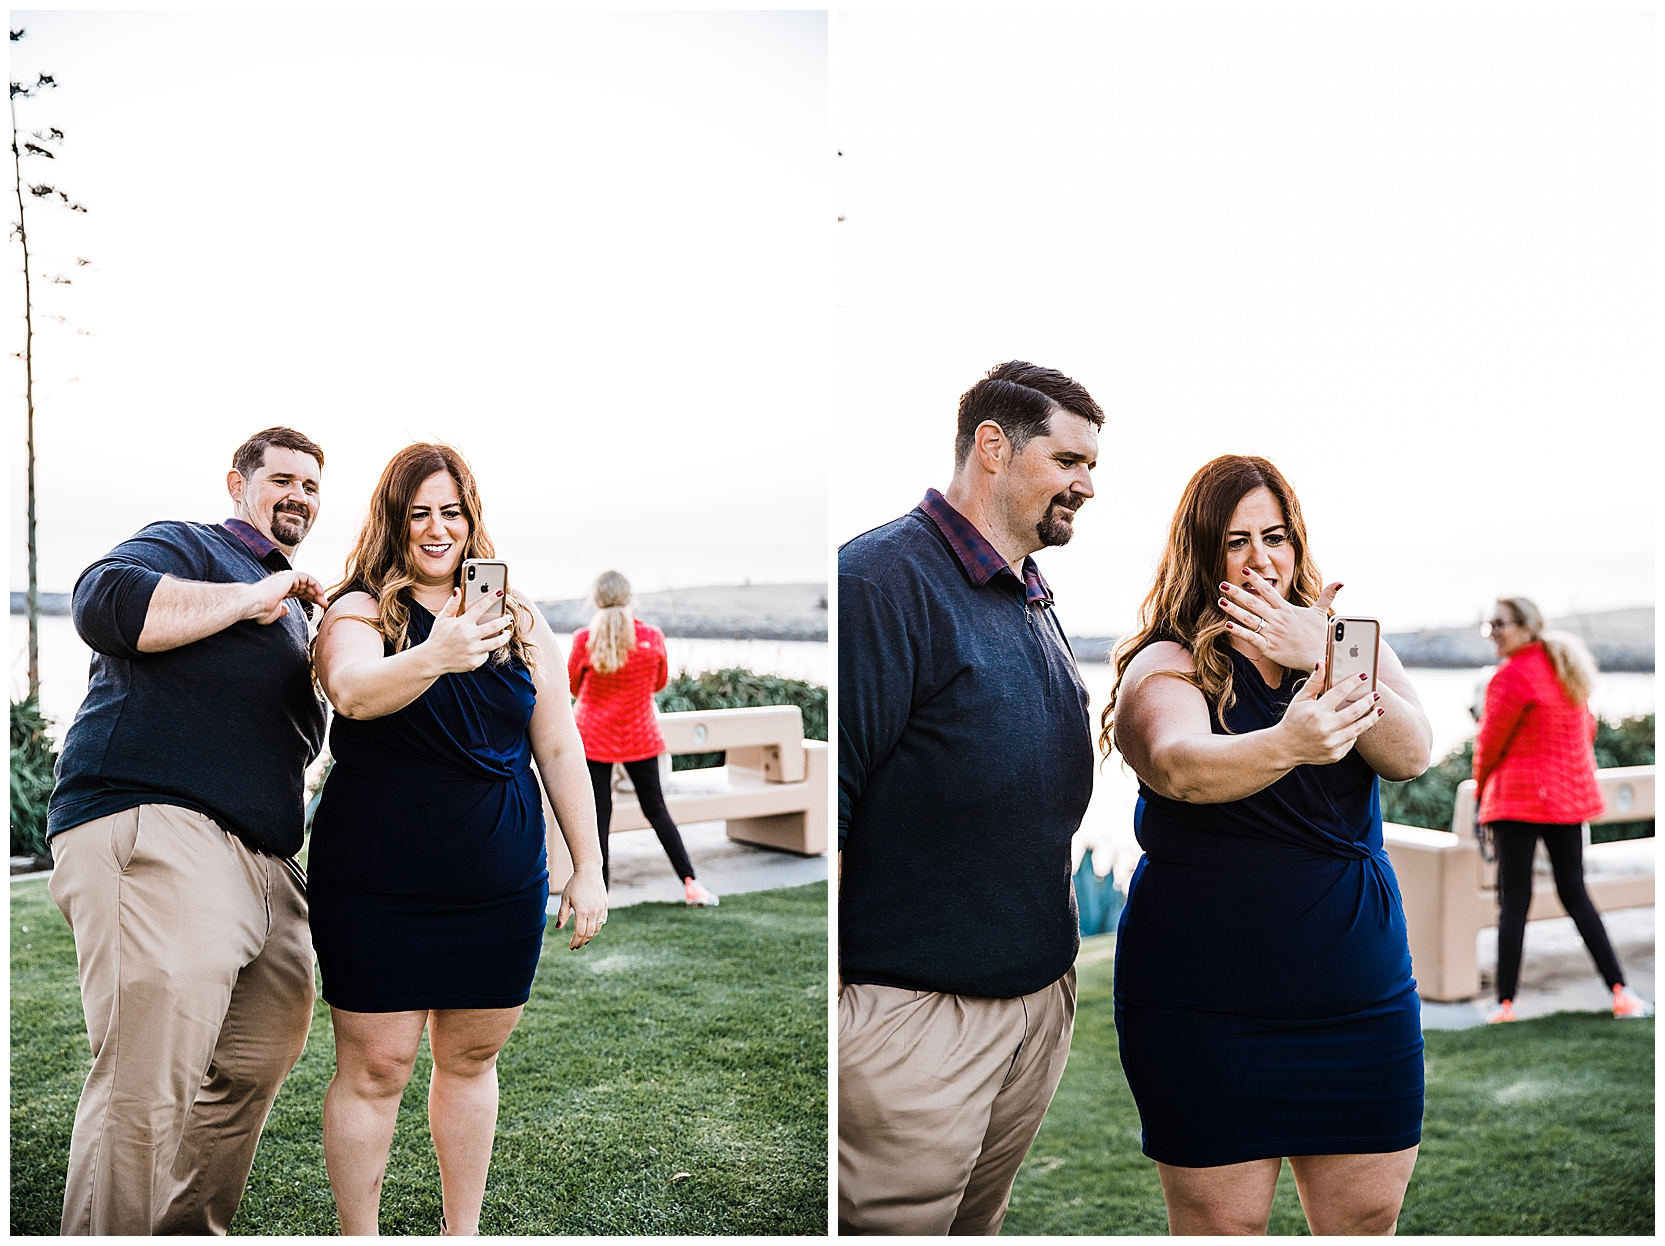 jessicafredericks_huntingtonbeach_proposal_sunset_engagement_0031.jpg